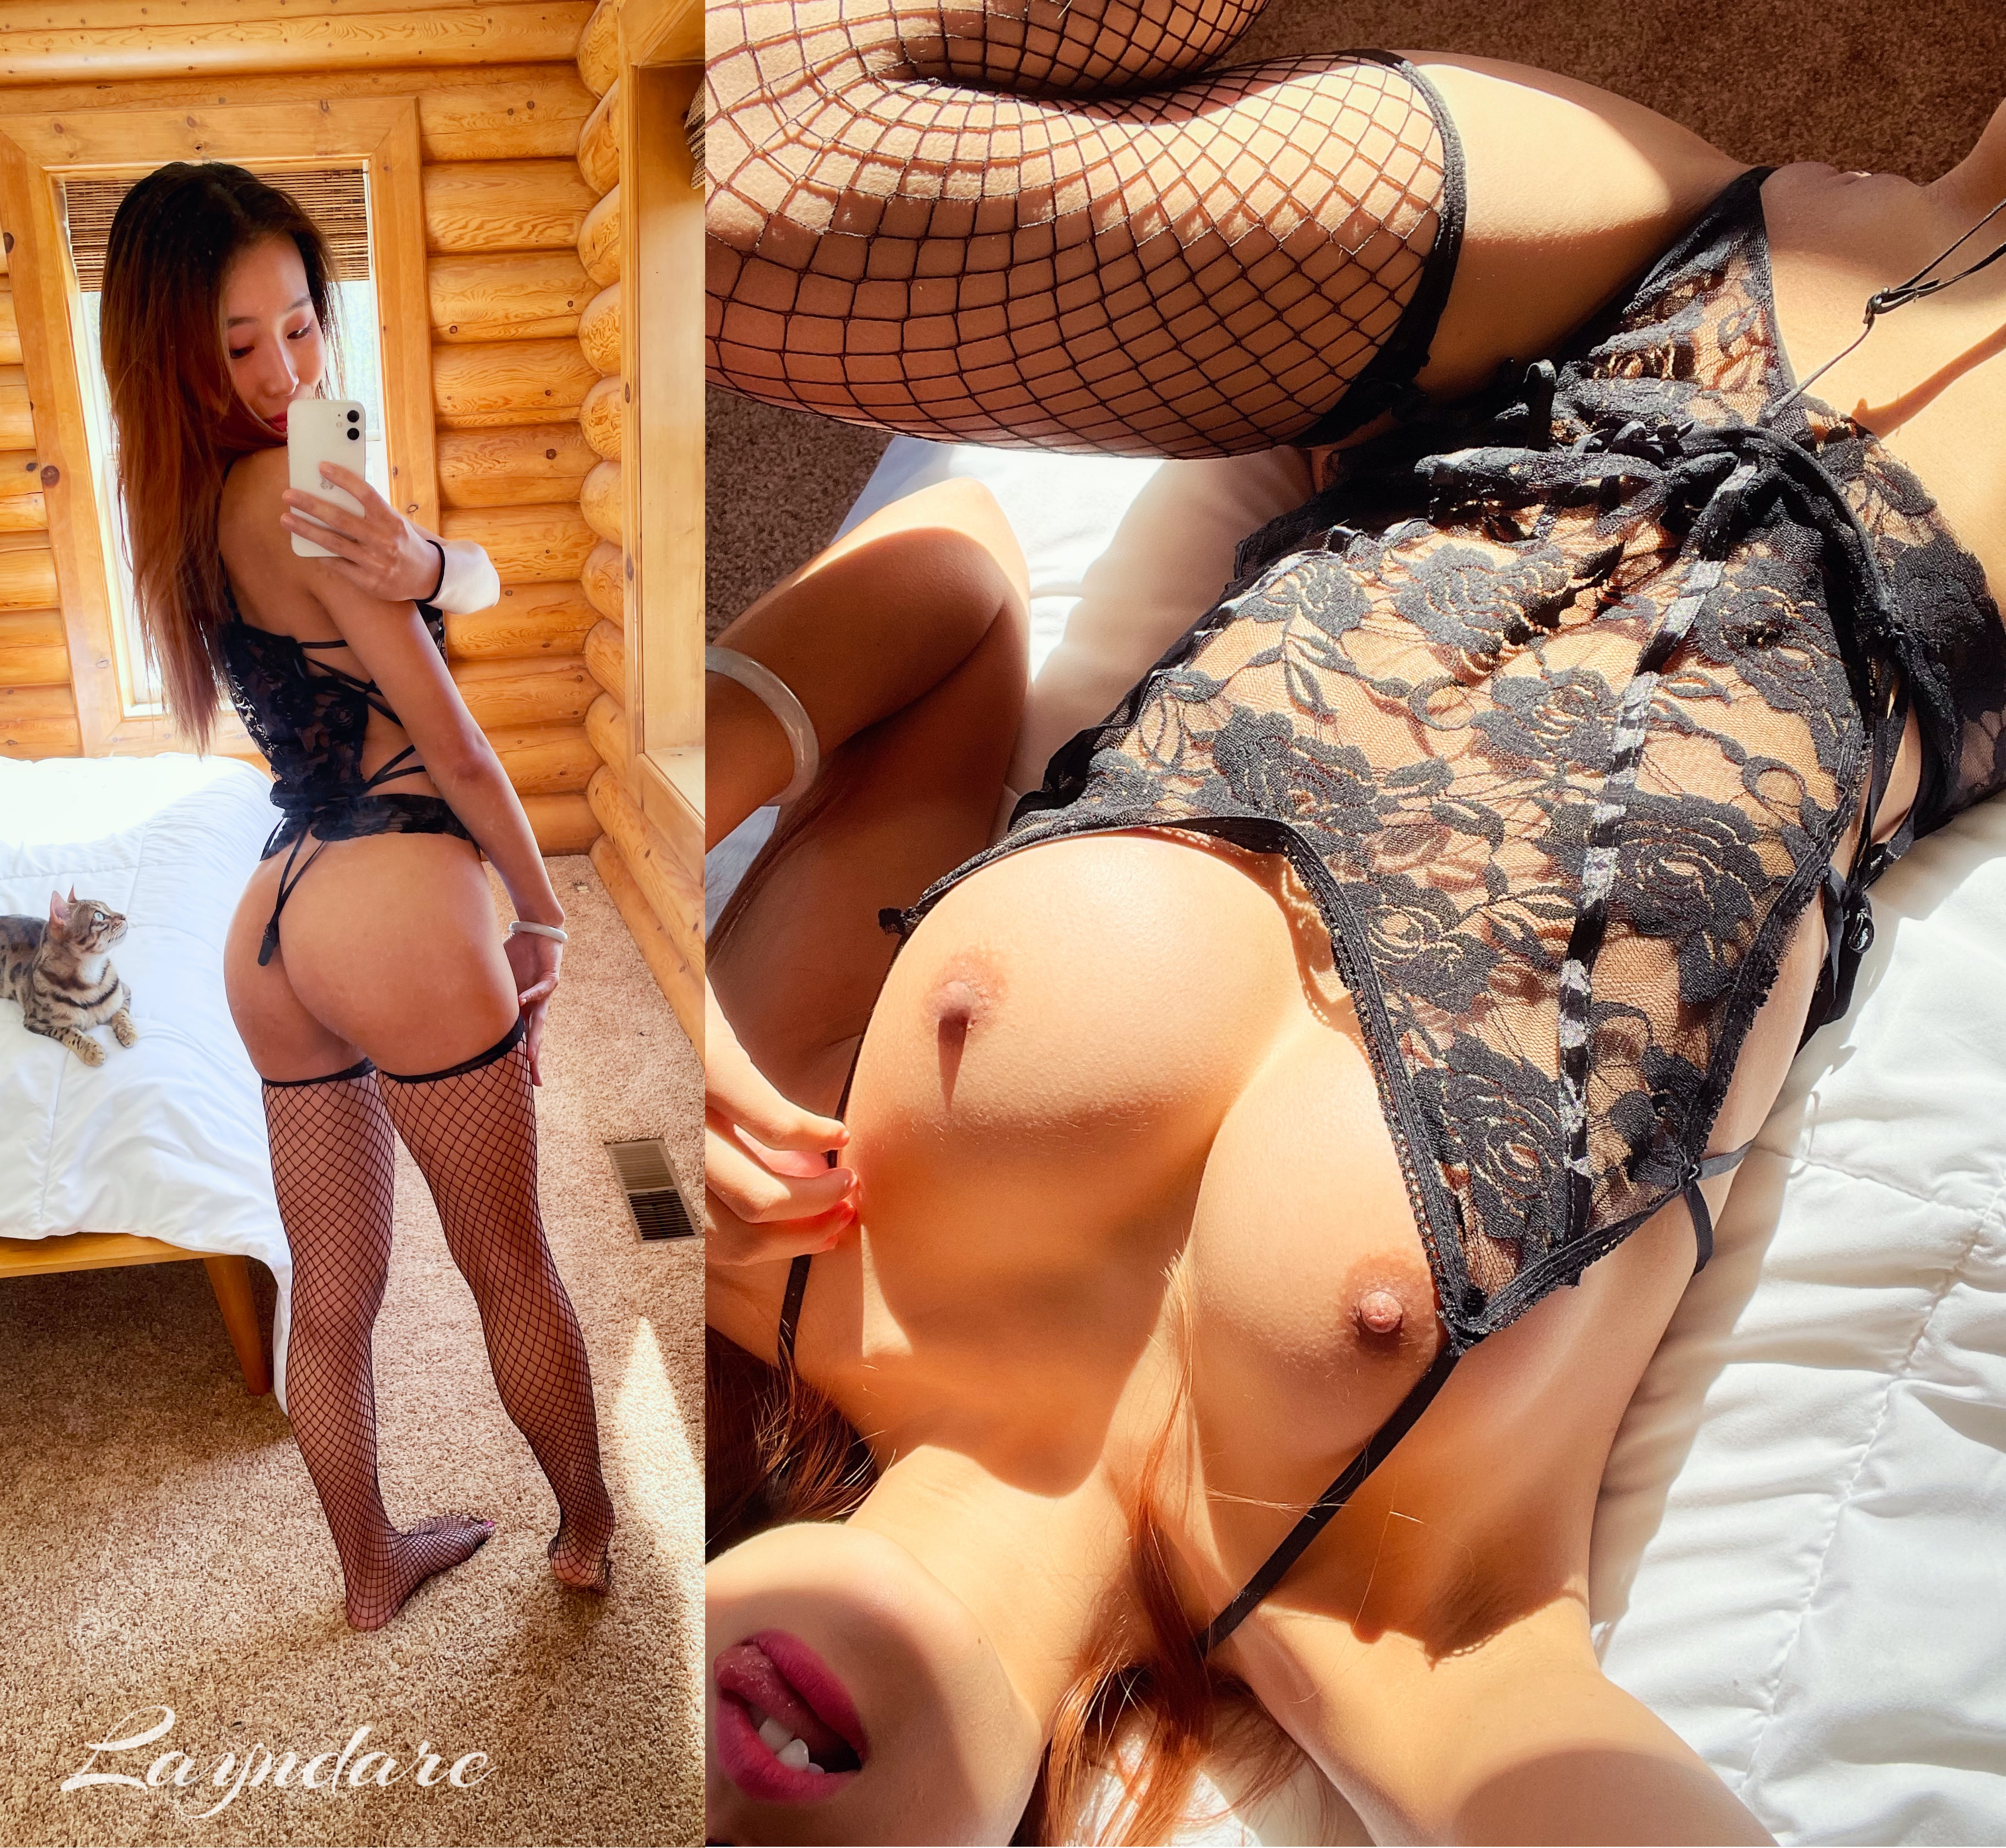 One of our naked asian pics called Hope you like starting off your mornings with a naughty on/off!